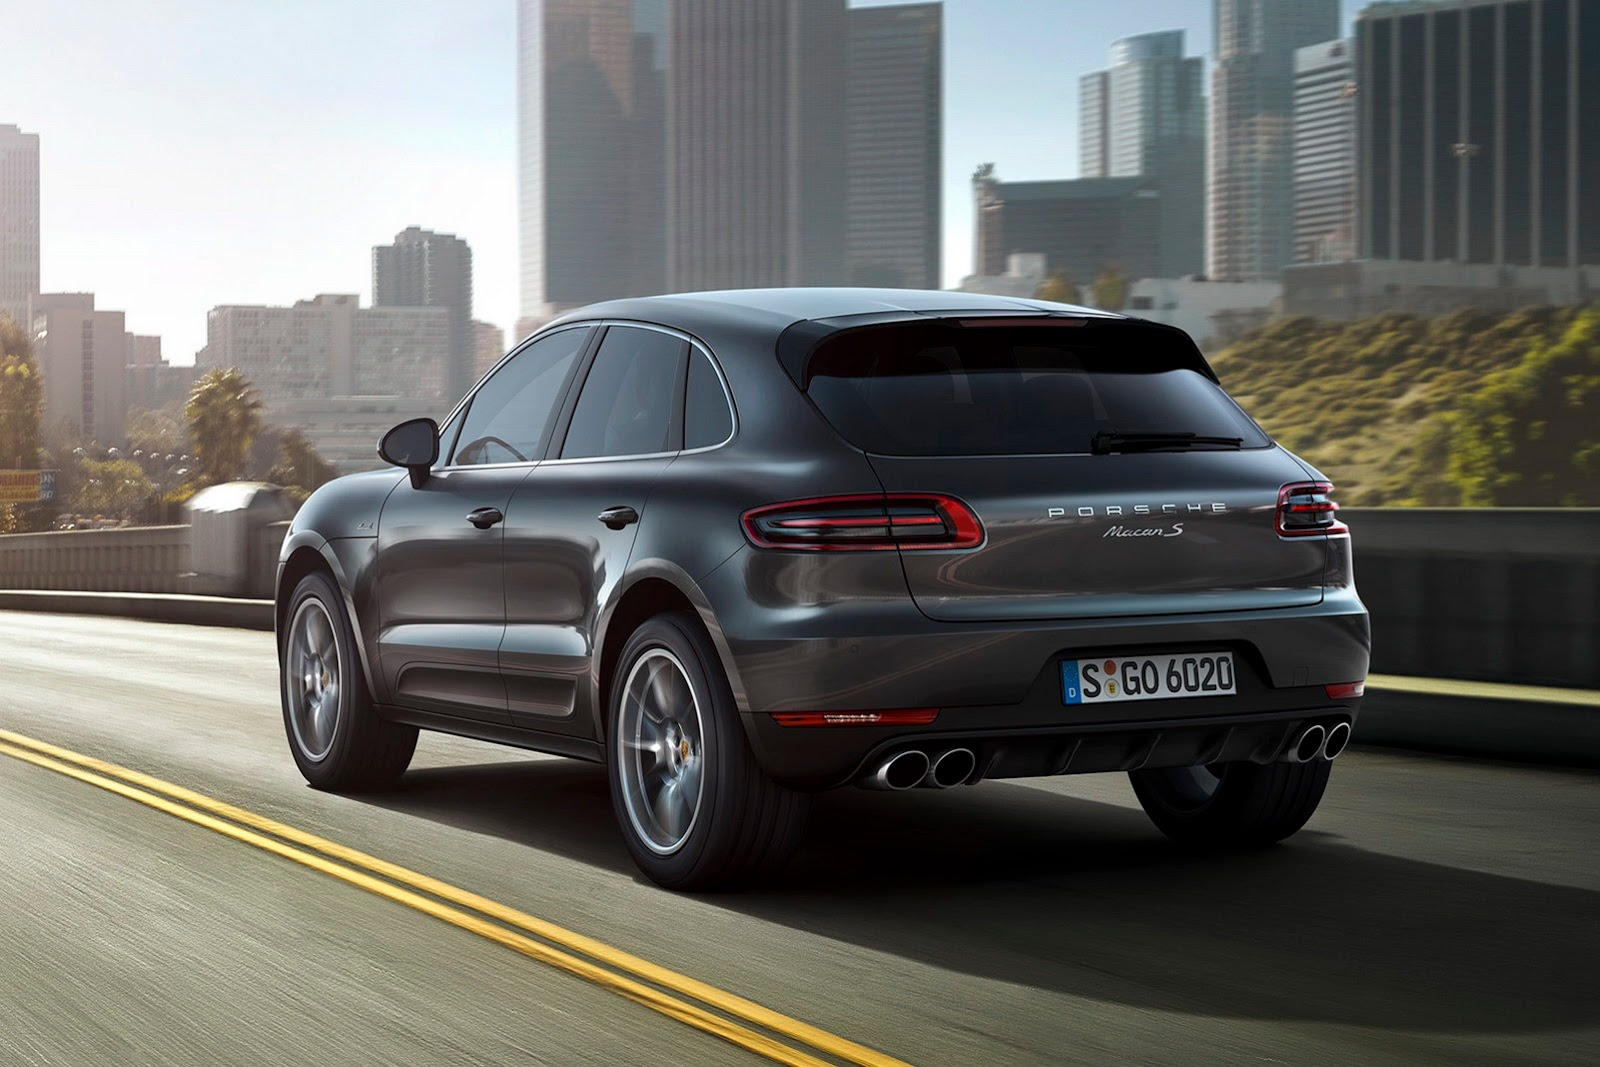 porsche macan turbo le suv sportif au design d un 4x4. Black Bedroom Furniture Sets. Home Design Ideas